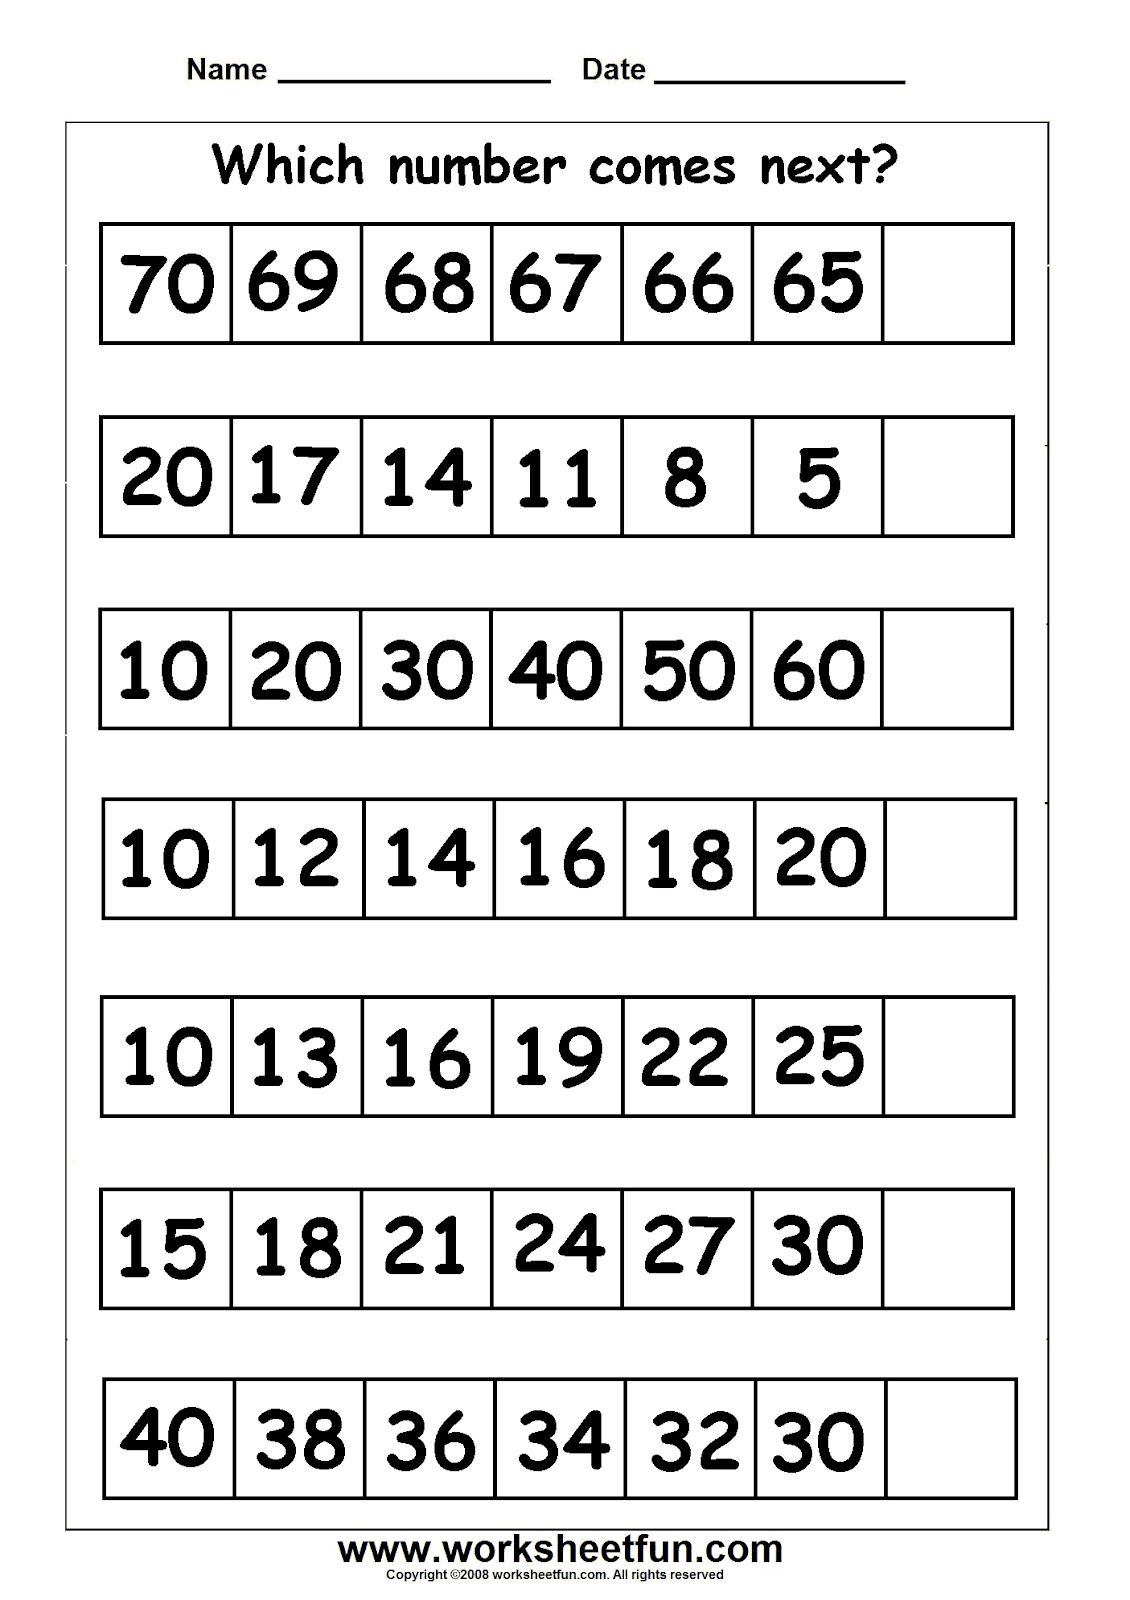 Worksheet Grade 5 Math Patterns Worksheets 17 best images about gr 2 patterns on pinterest lesson plans skip counting and the rules